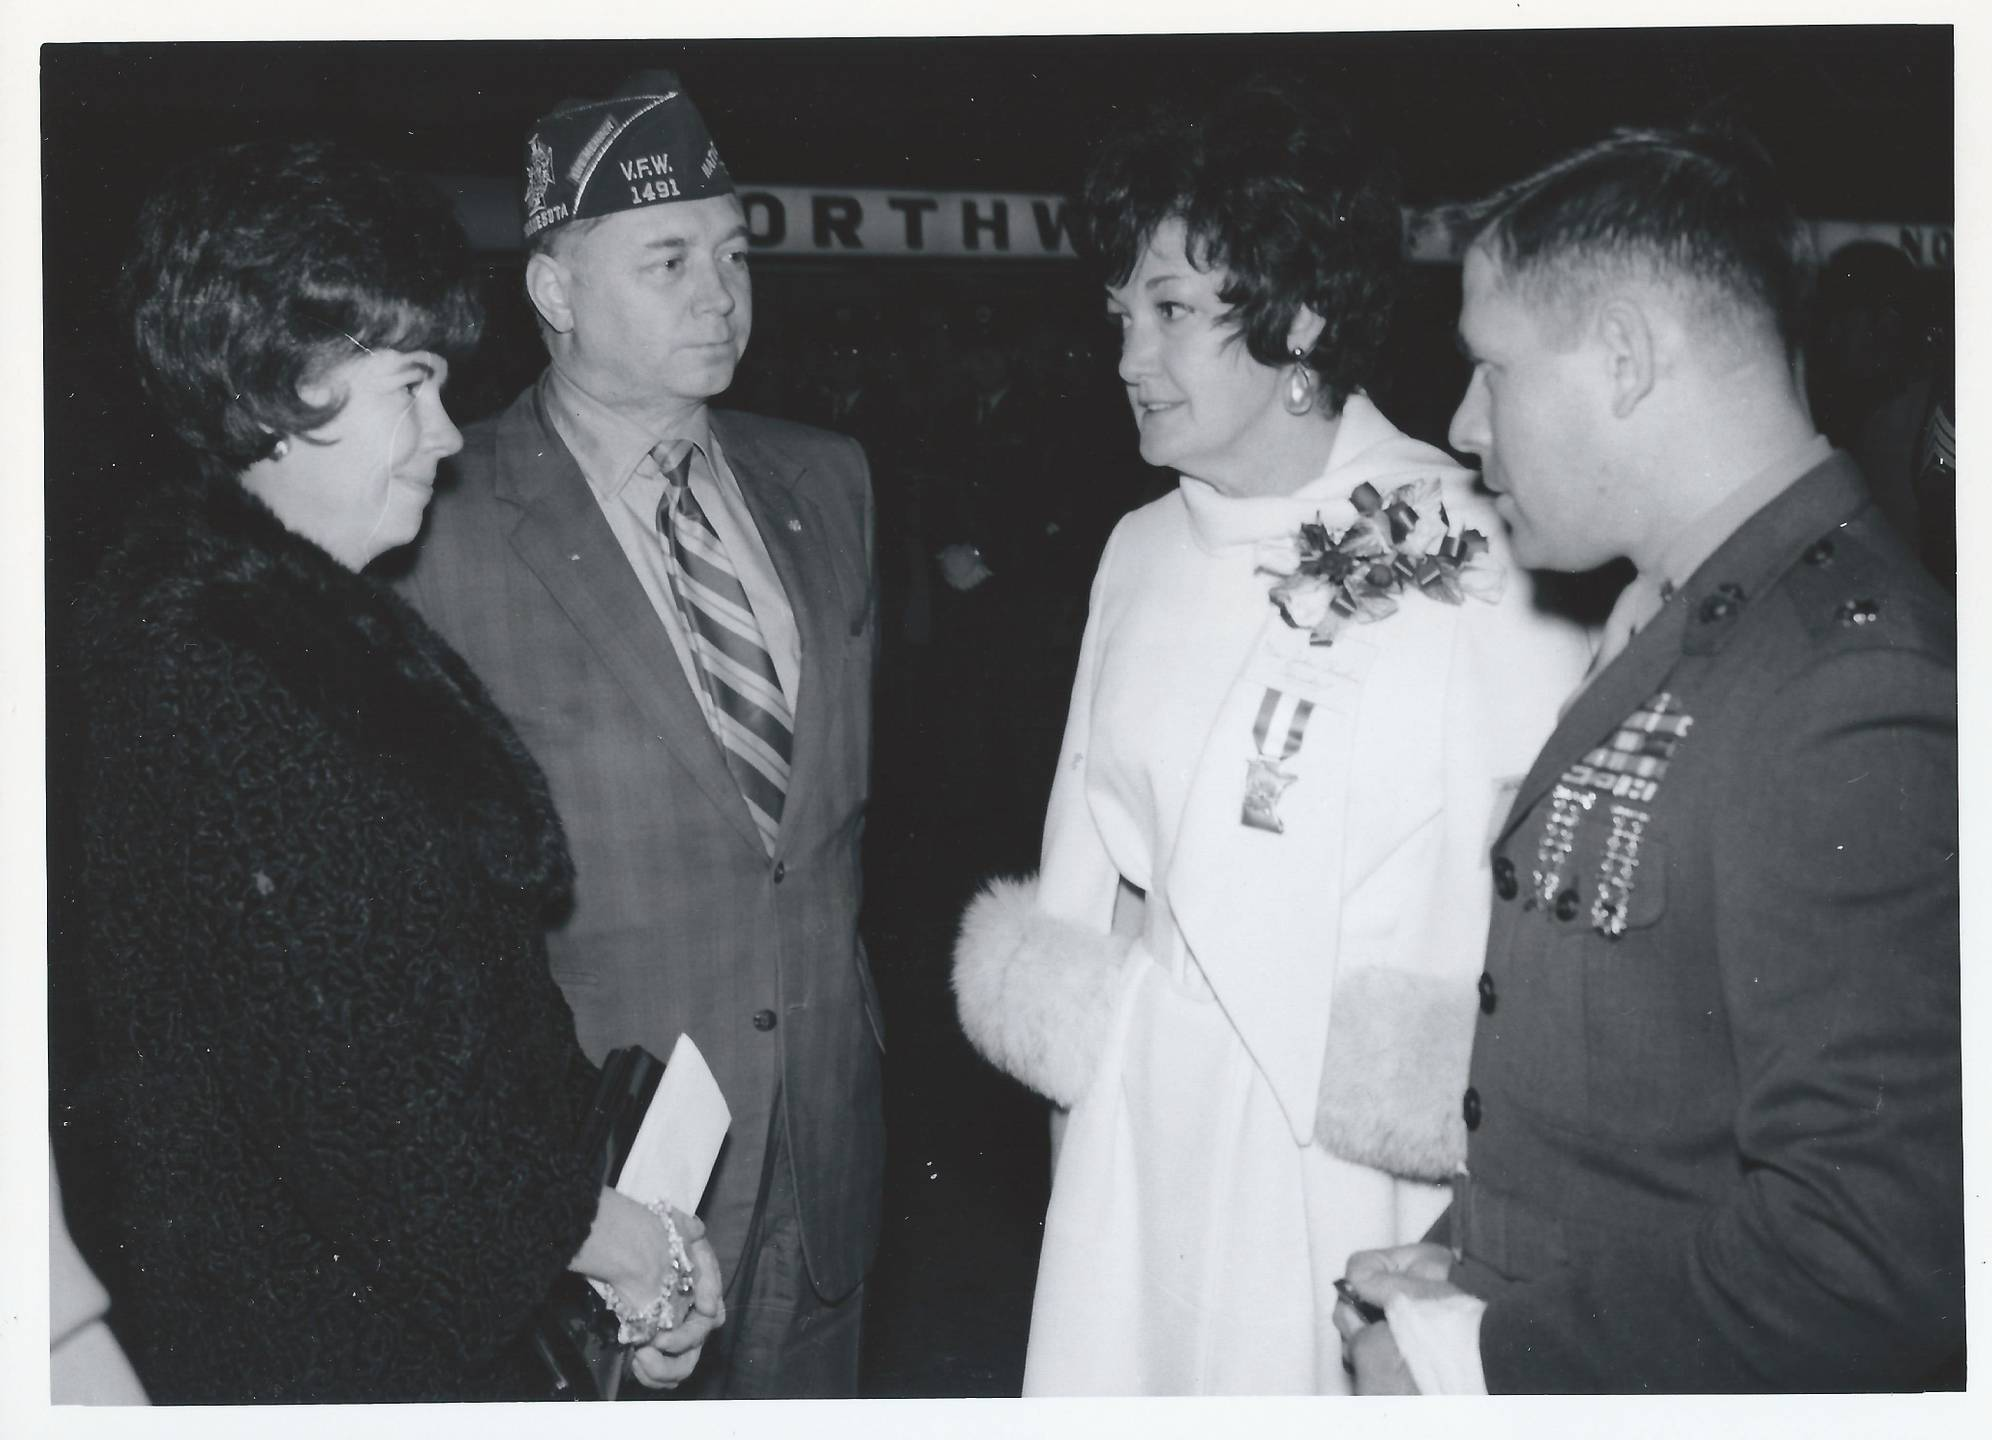 Two servicemen and two women conversing.